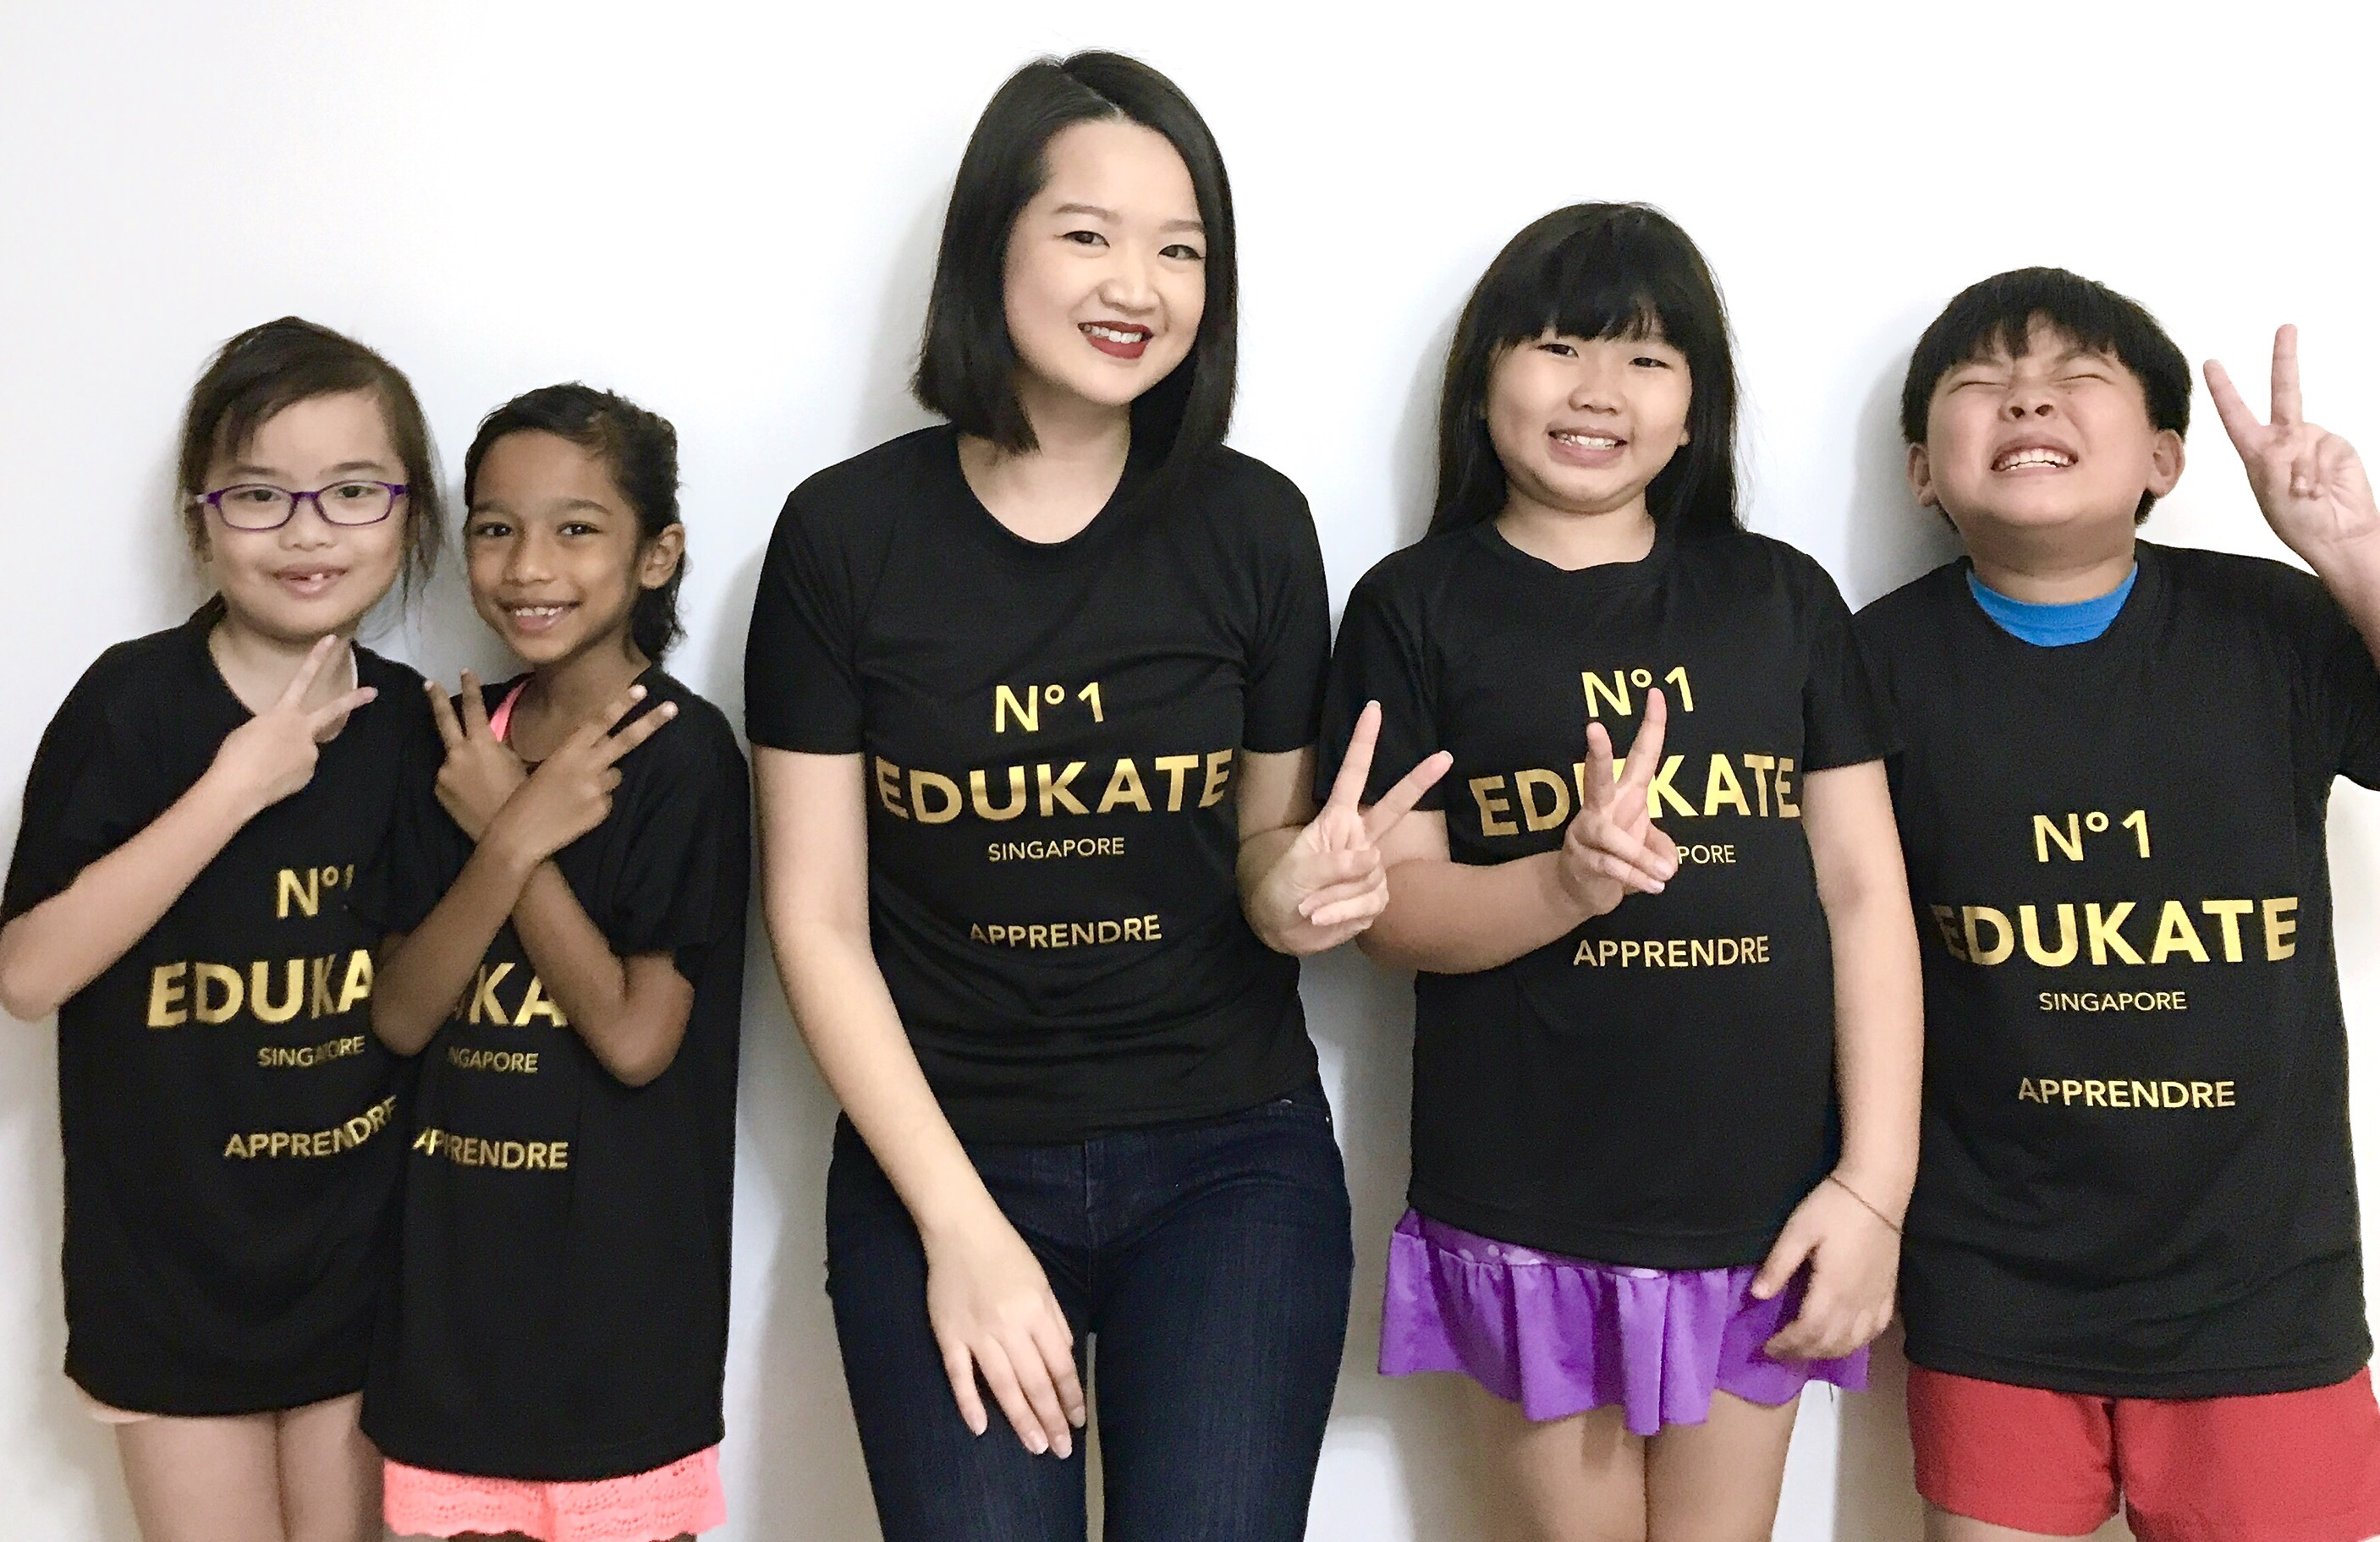 Yishun English and Mathematics Tuition  English Math Tuition Small Group Tuition Centre tutor english math science primary secondary small group tuition Tuition Centre English Math Science Tutor Small Group Pri Sec Primary Secondary Add Math E Math Physics Science Classes Enrichment program Good Tuition Centre